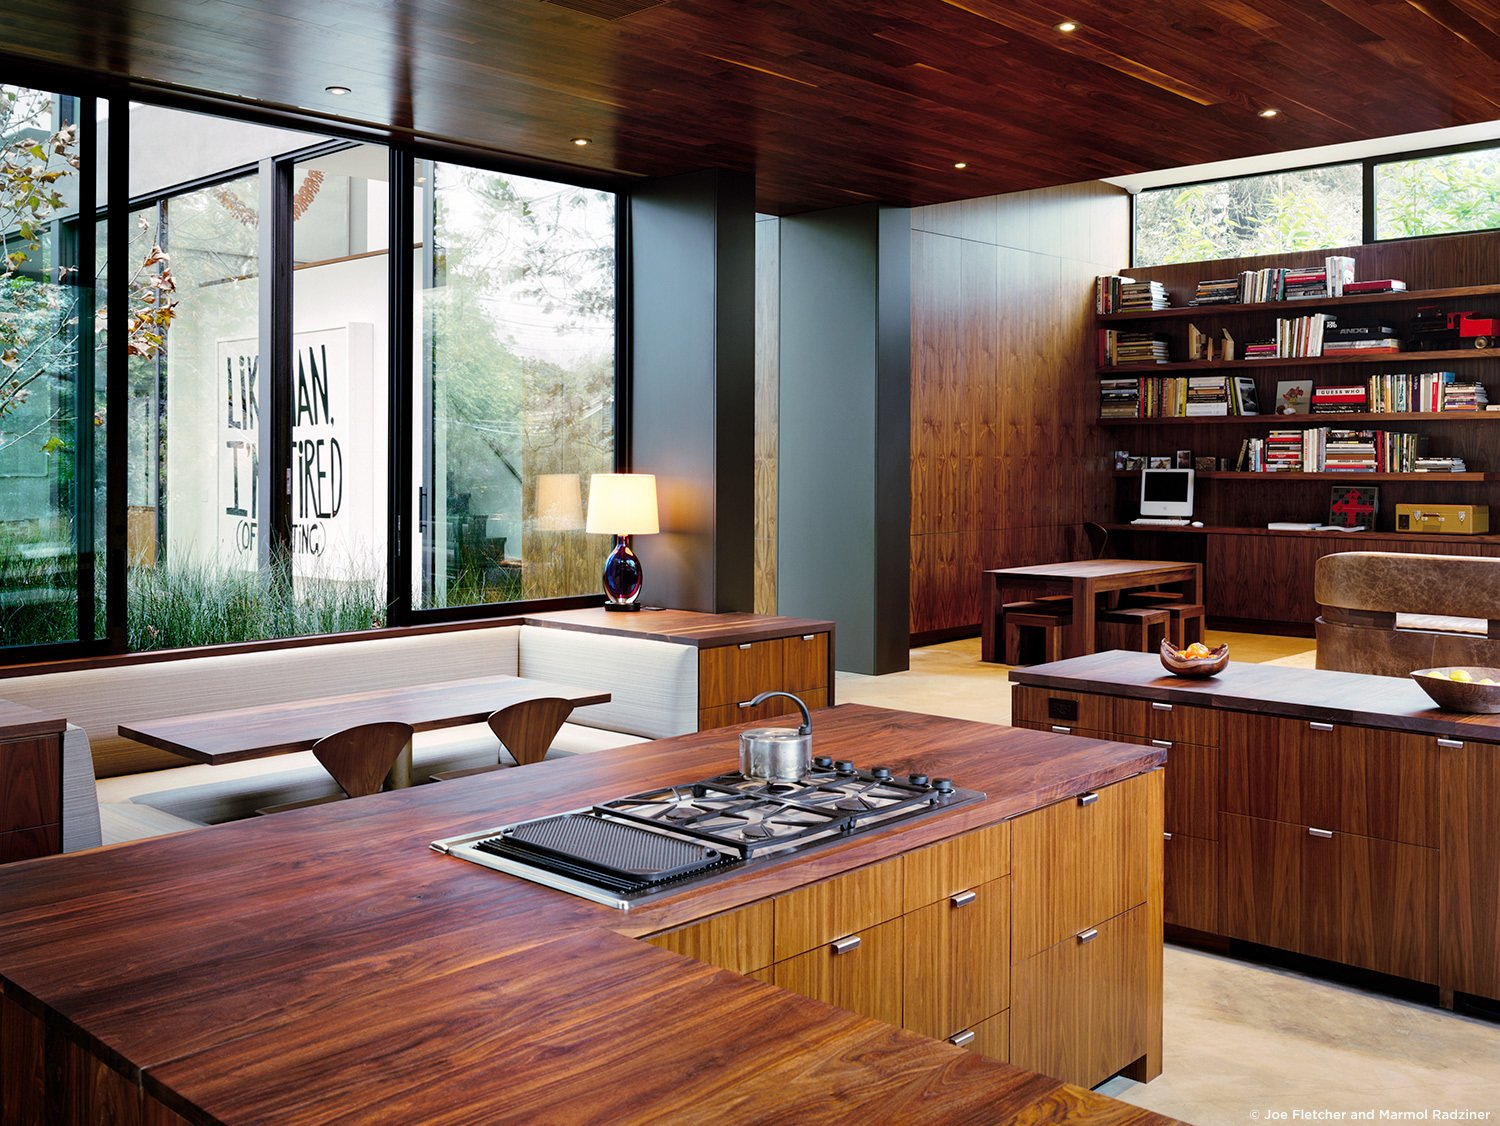 #ViennaWayResidence #modern #midcentury #inside #interior #windows #lighting #dining #wood #table #seating #booth #storage #kitchen #bookshelves #exterior #landscape #Venice #California #MarmolRadziner